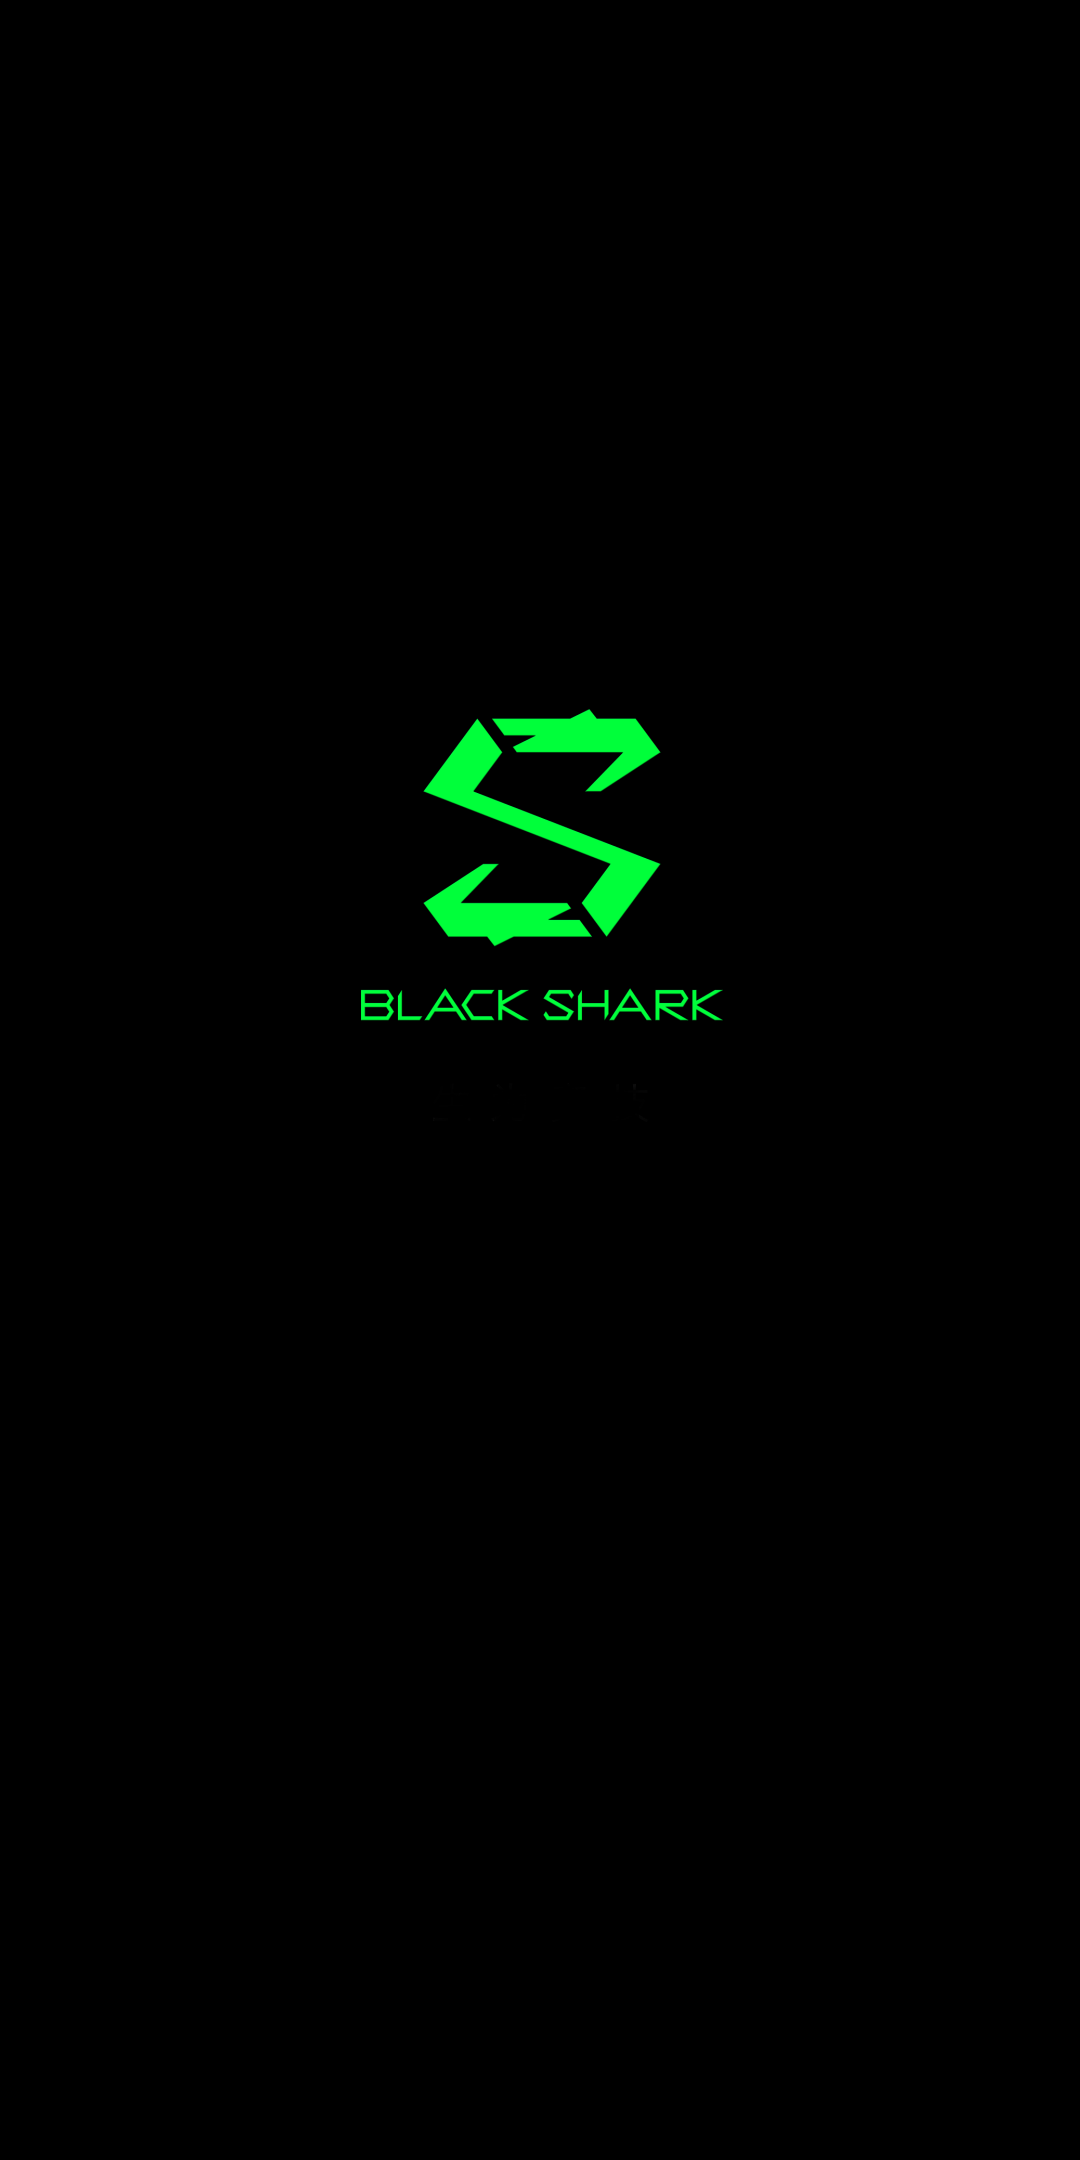 Download New Black Phone Wallpaper HD Today by droidviews.com